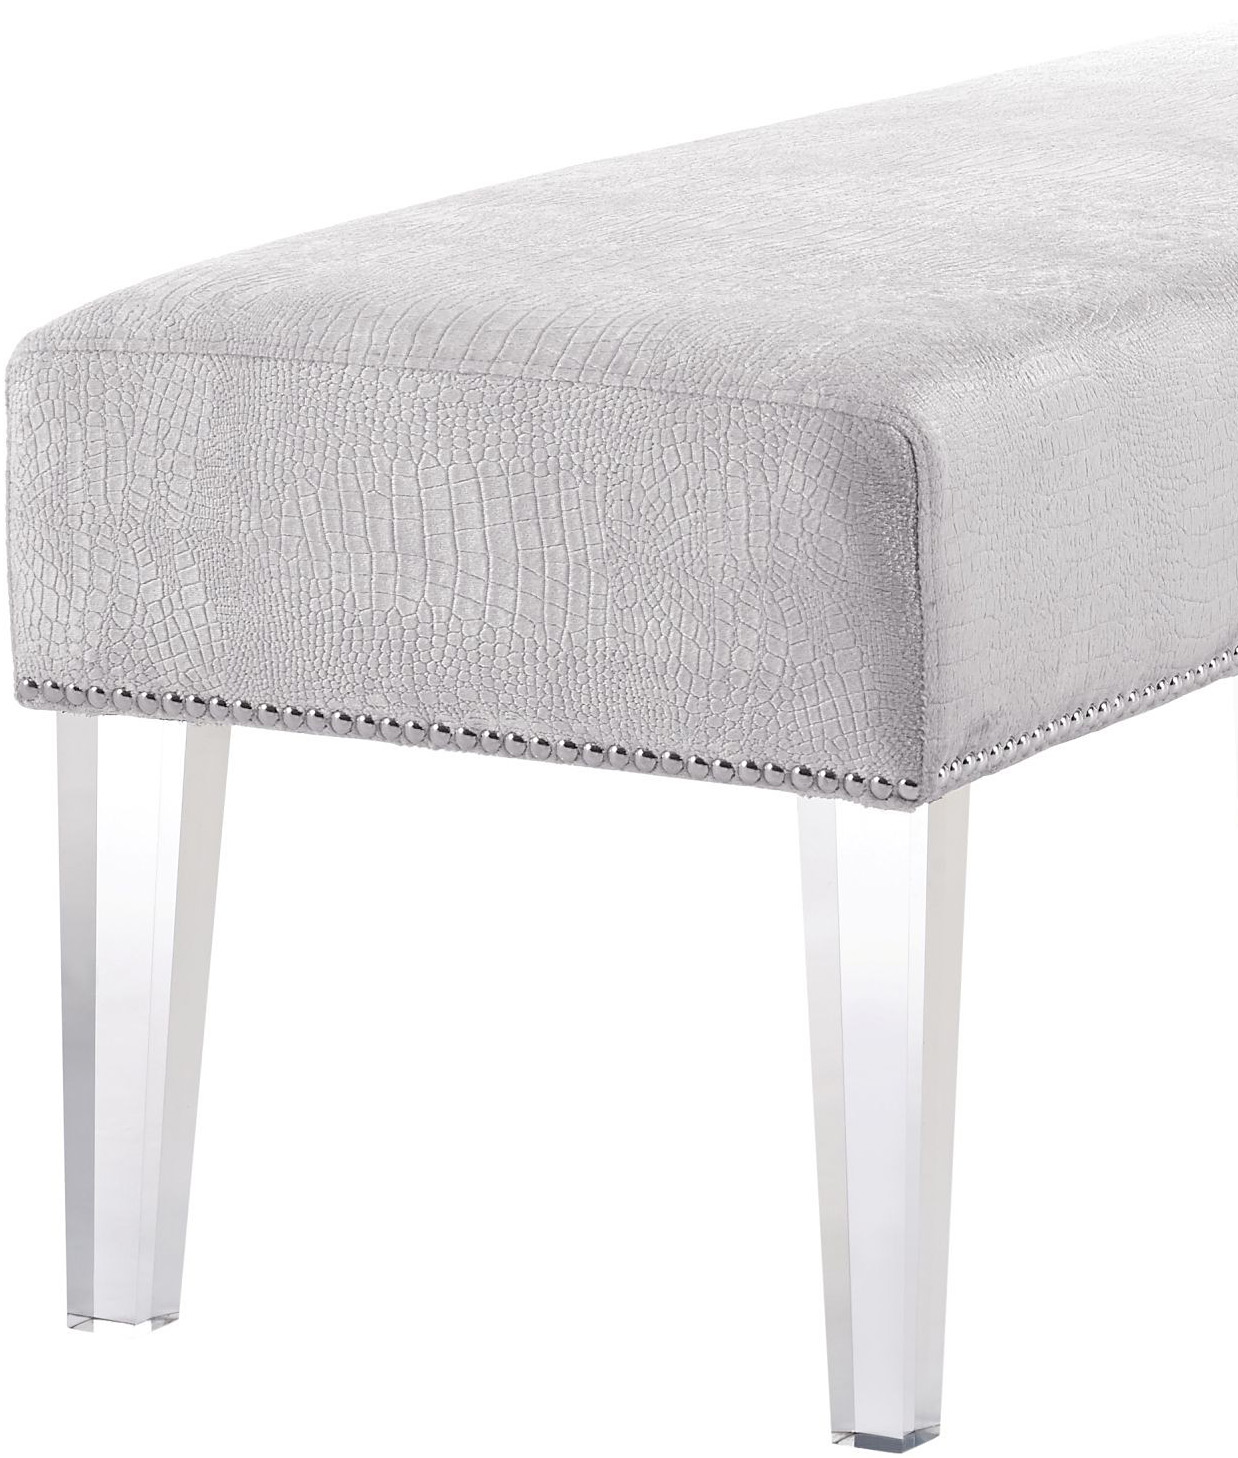 the mirage crocodile bench in silver